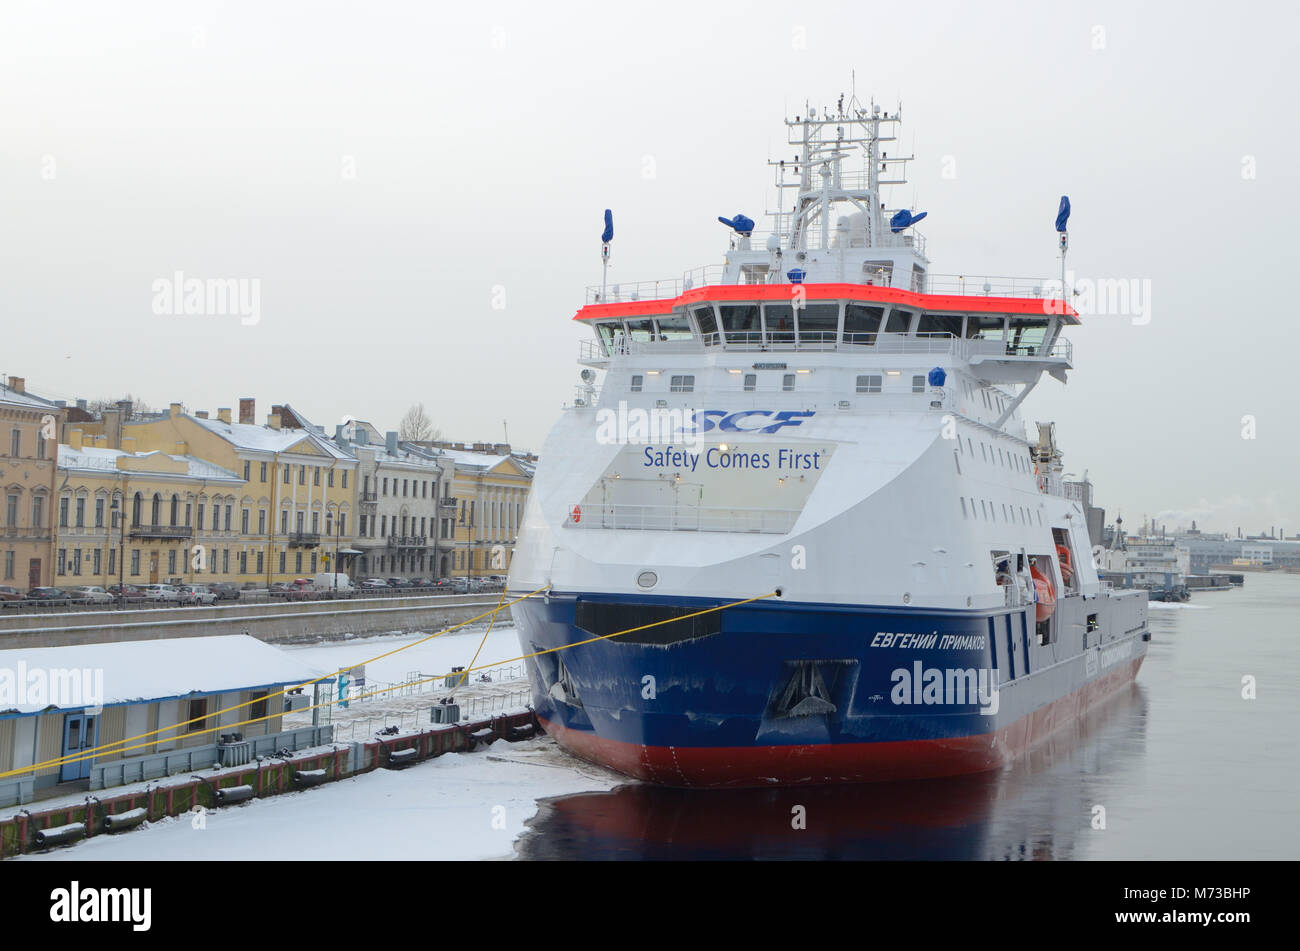 Icebreaker Ship Stock Photos & Icebreaker Ship Stock Images